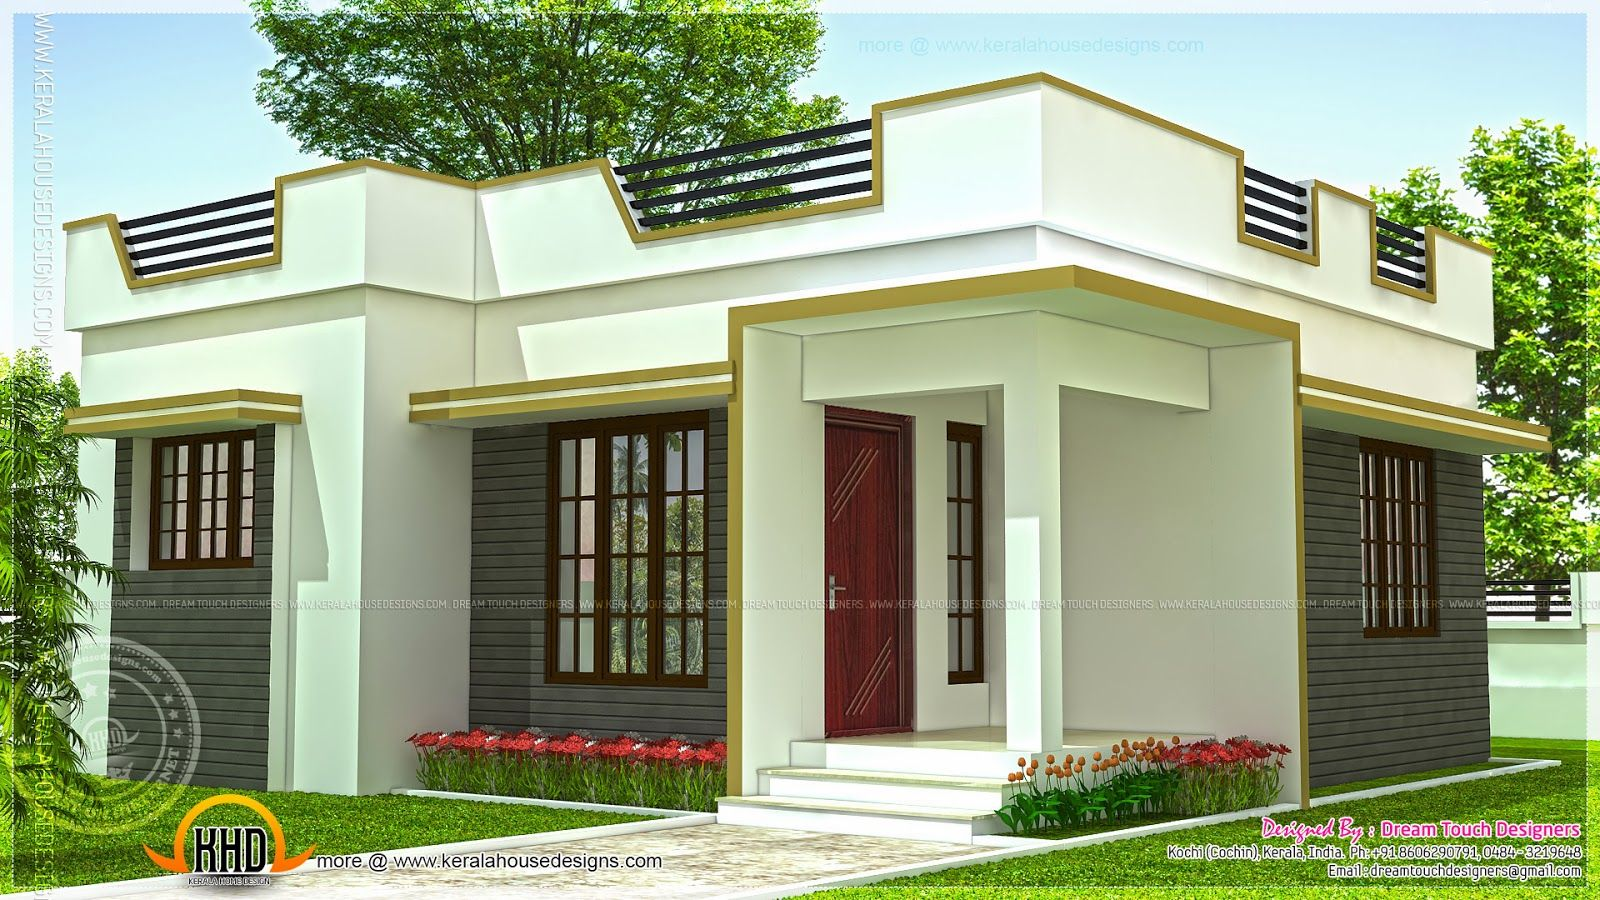 Lately 21 small house design kerala small house for Small indian house plans modern